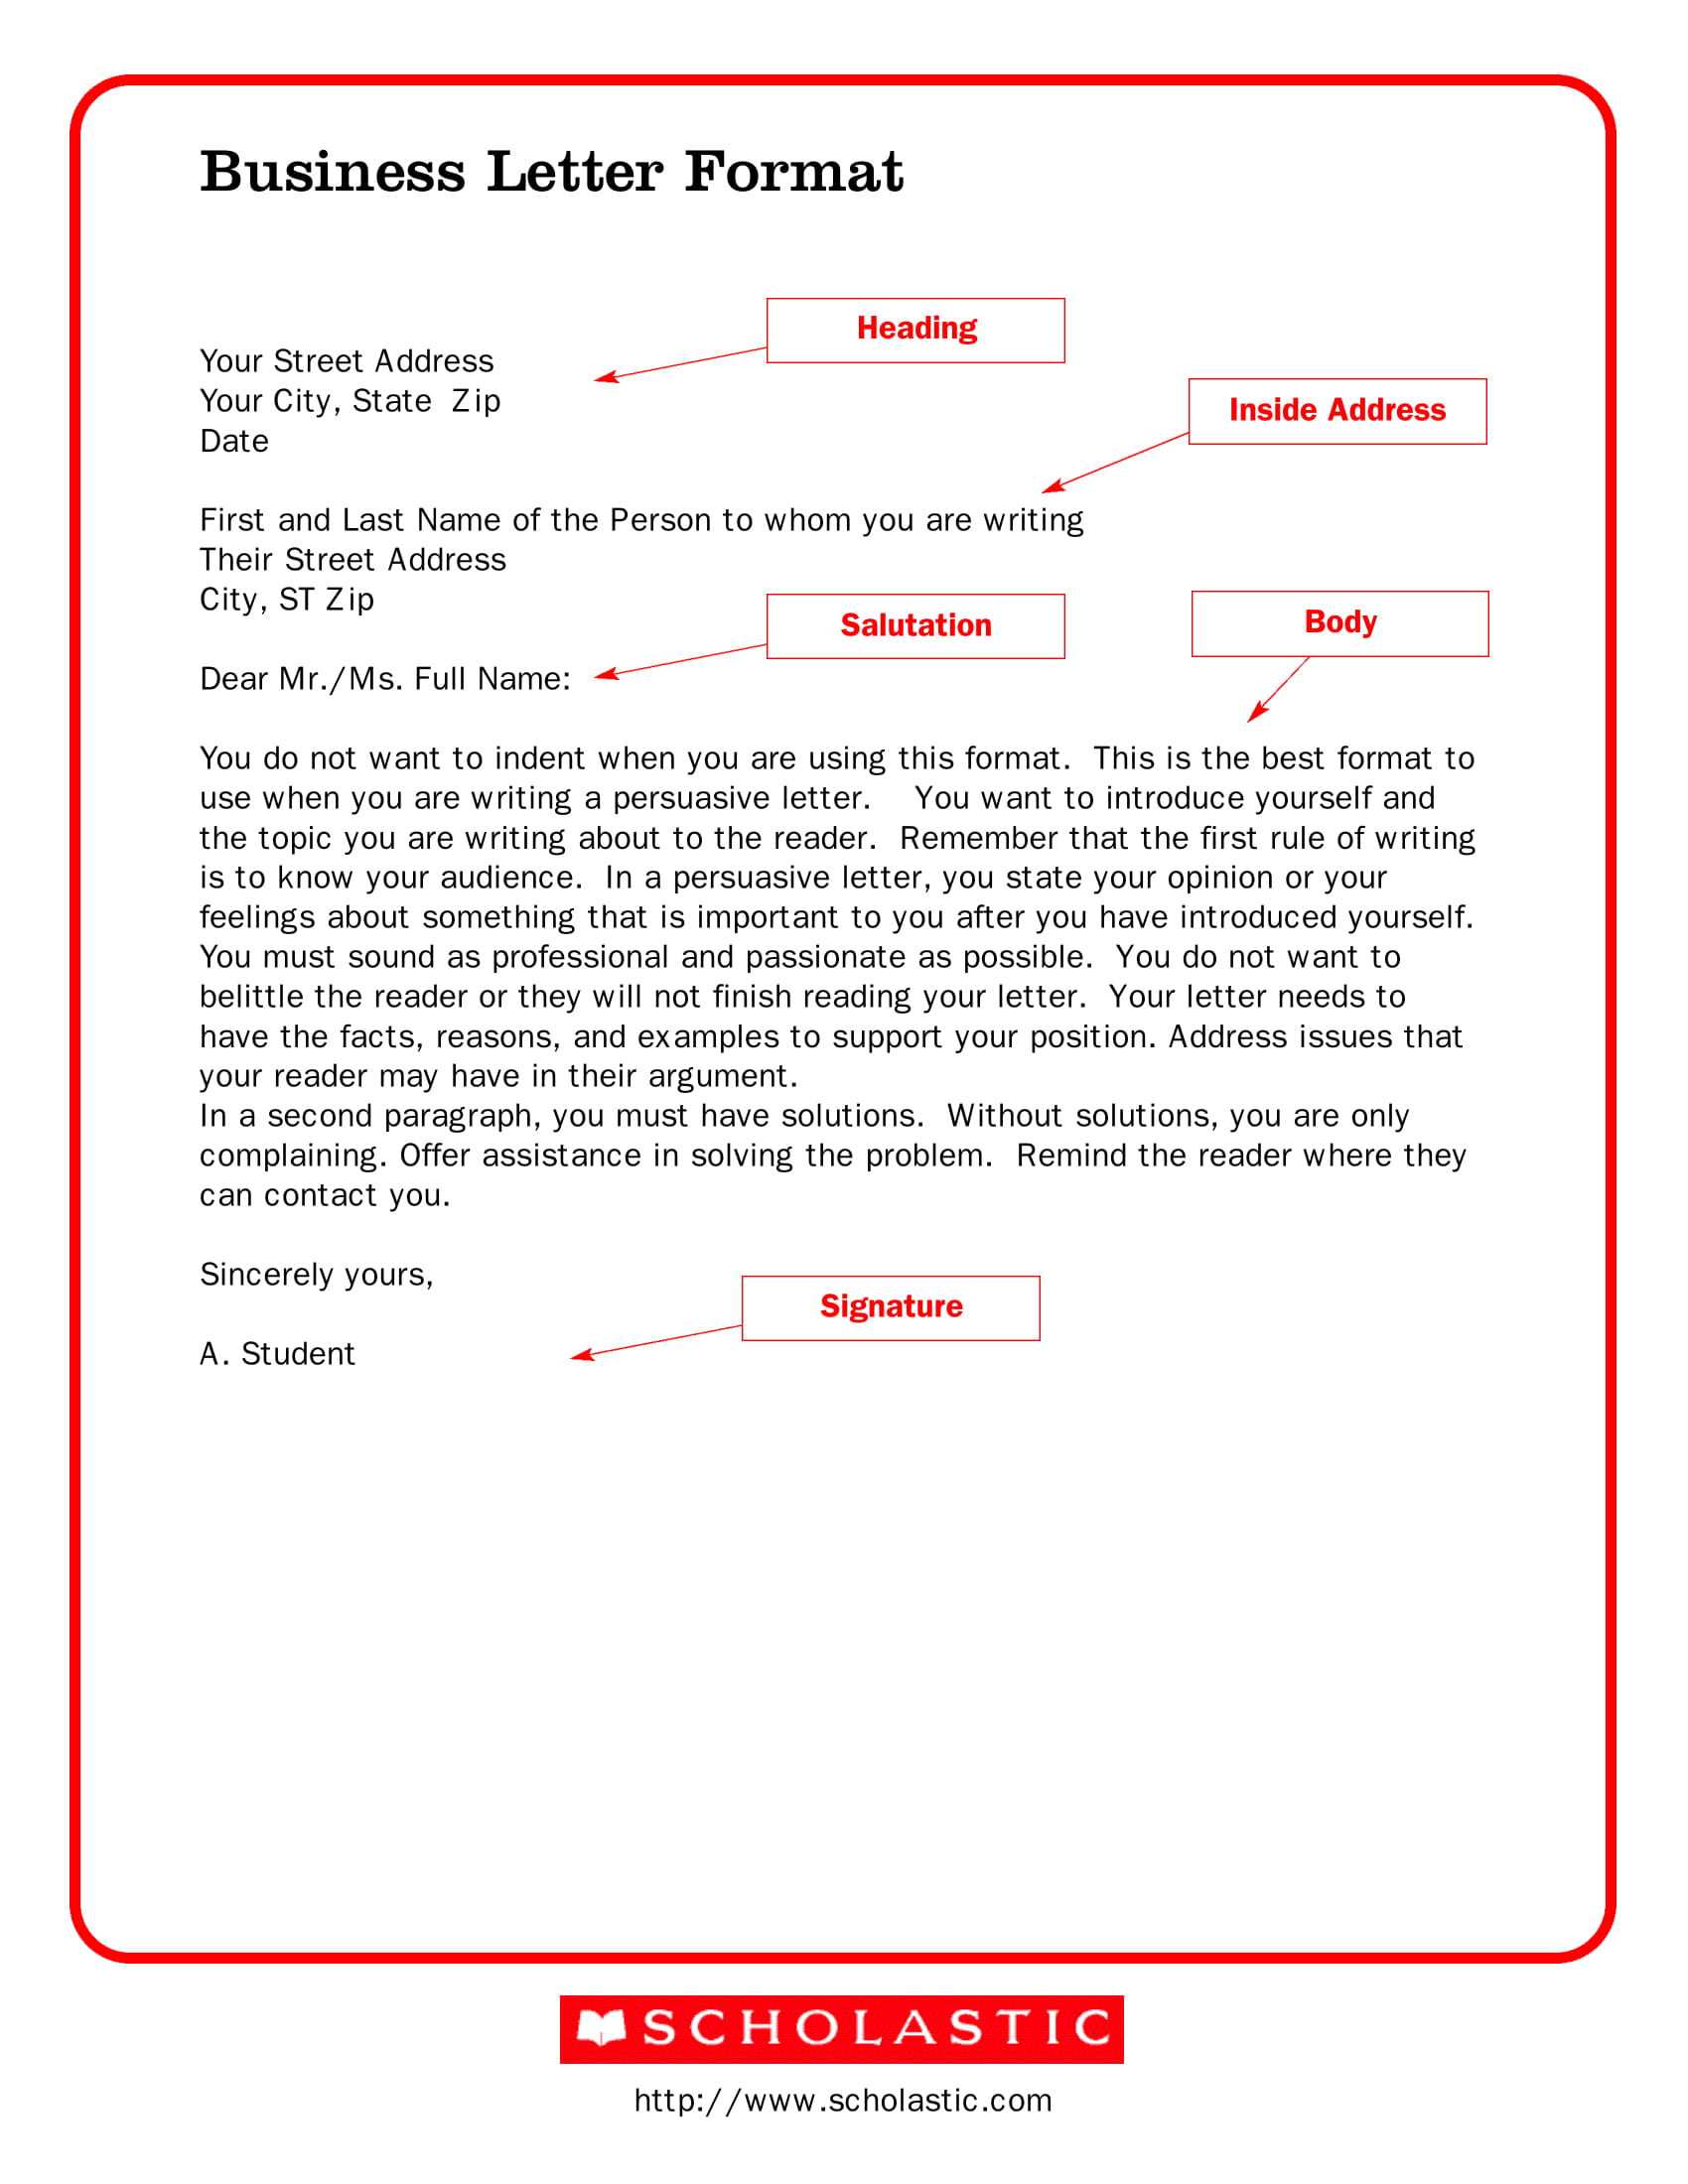 new business letter format example